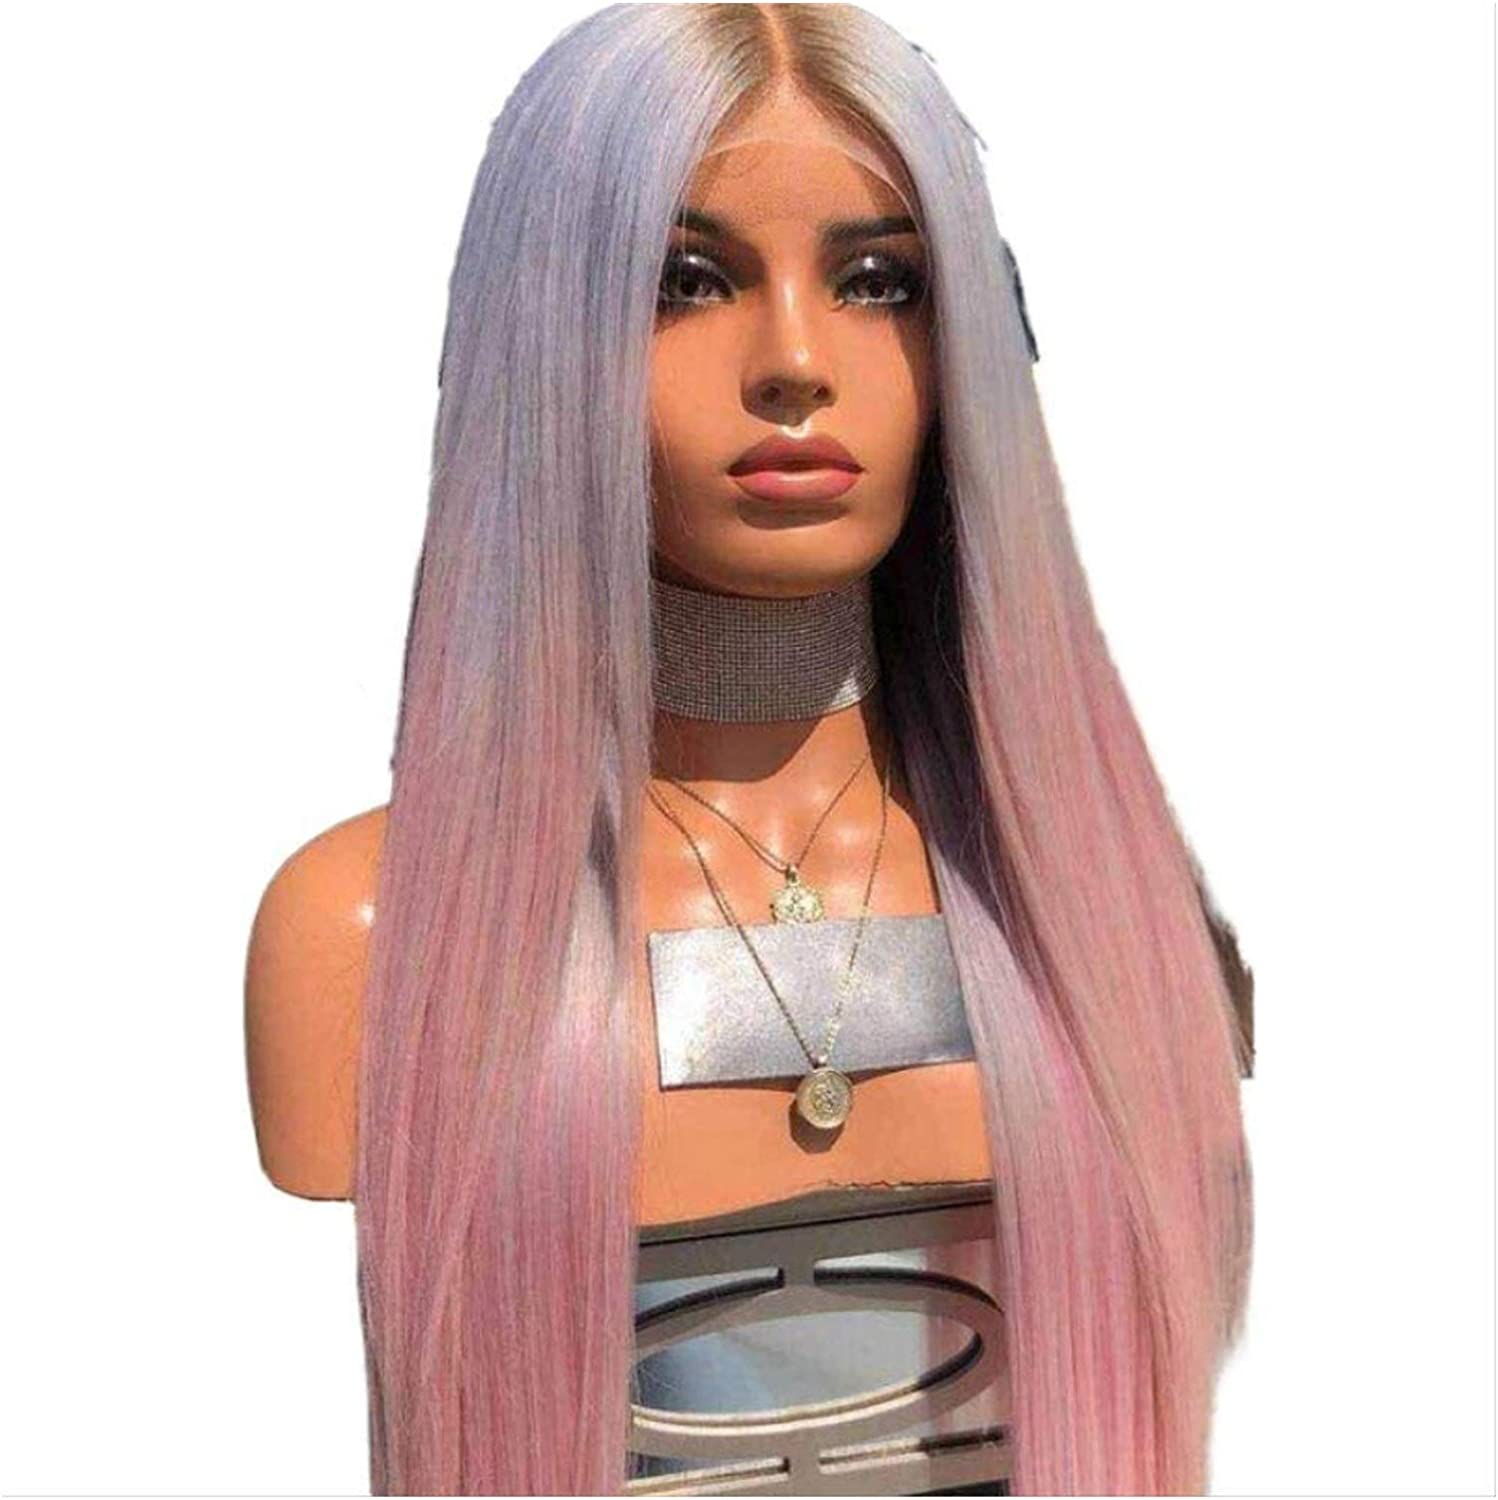 Seupeak Fashion Limited price sale Female Color Gradient Straight Long Regular store Hair in Wig